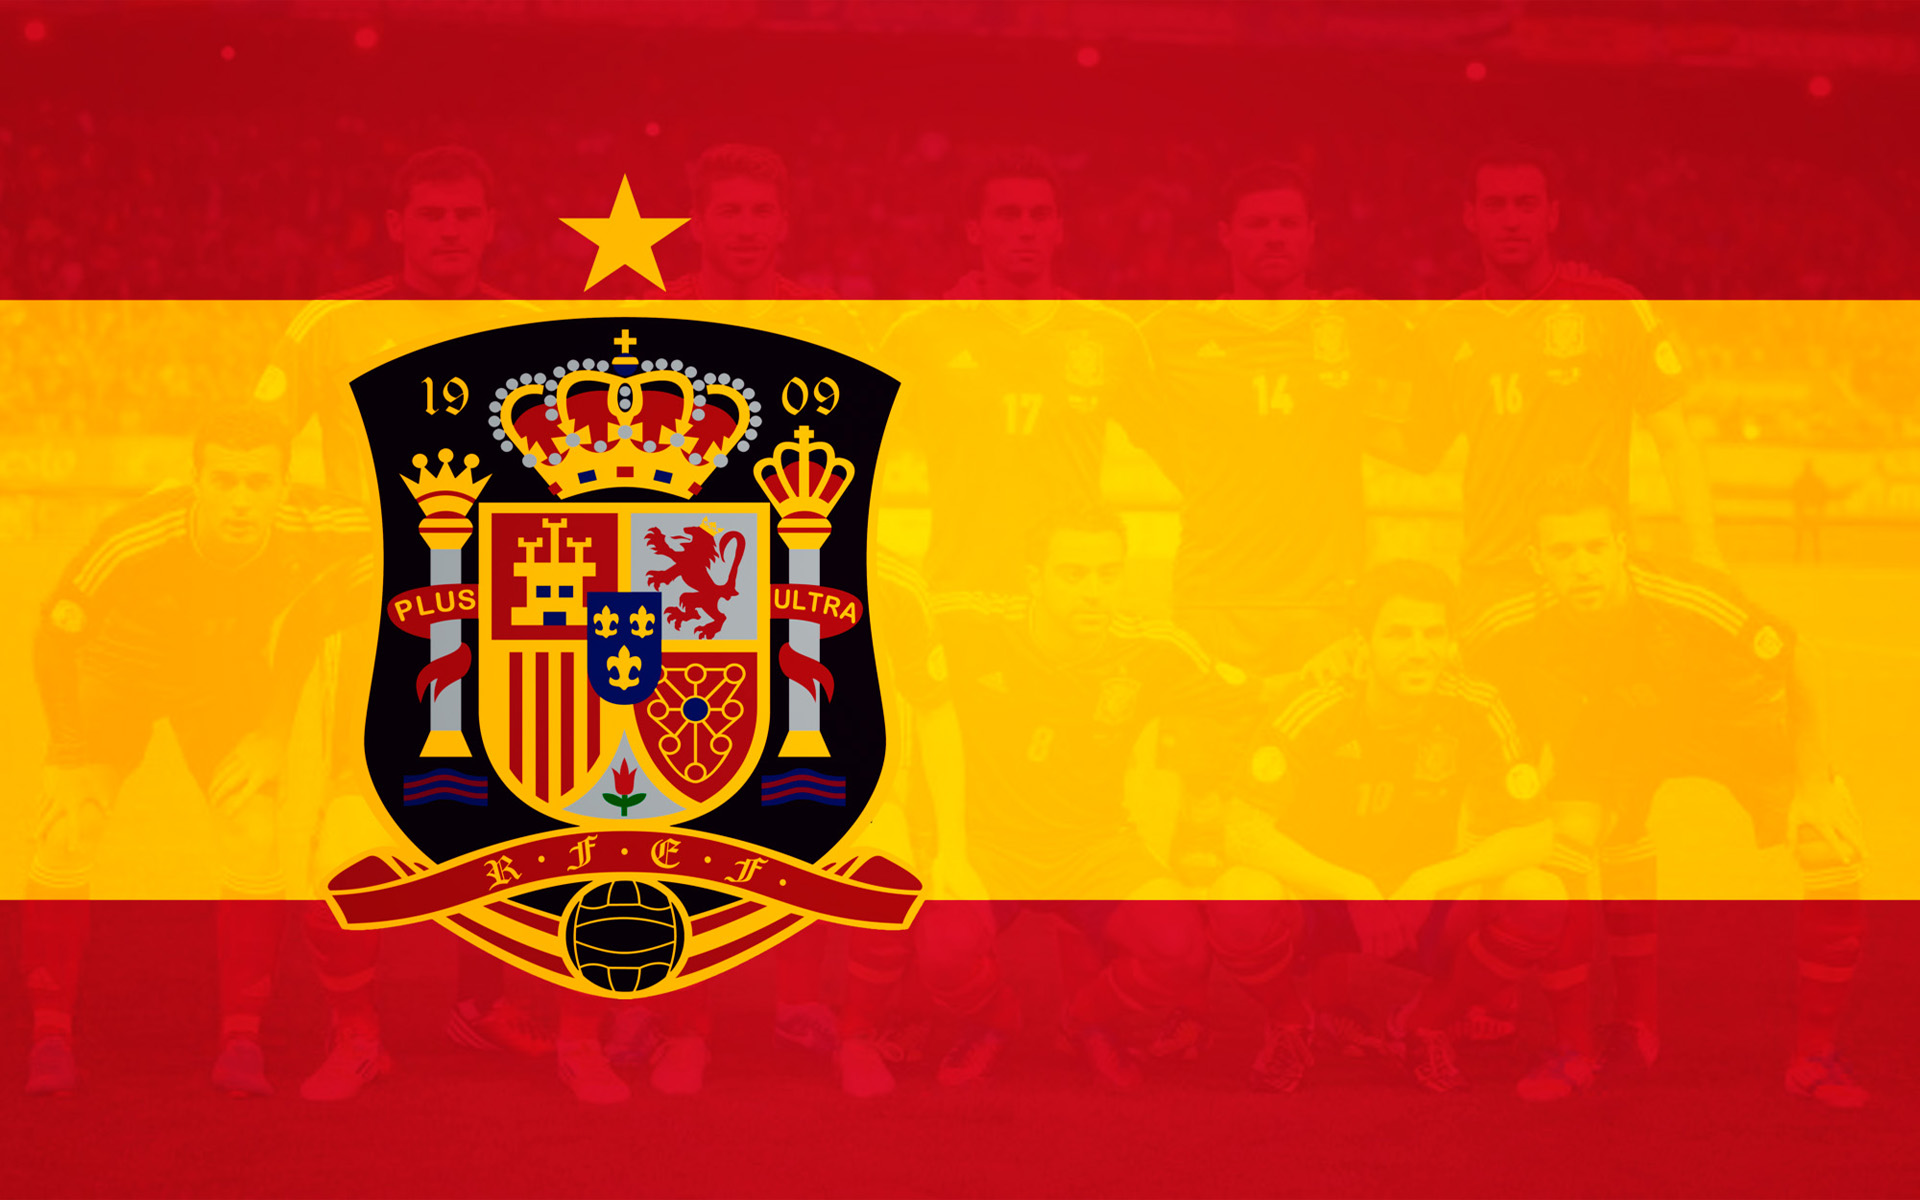 Spain Full Hd Wallpaper And Background Image: Spain Wallpapers, Pictures, Images